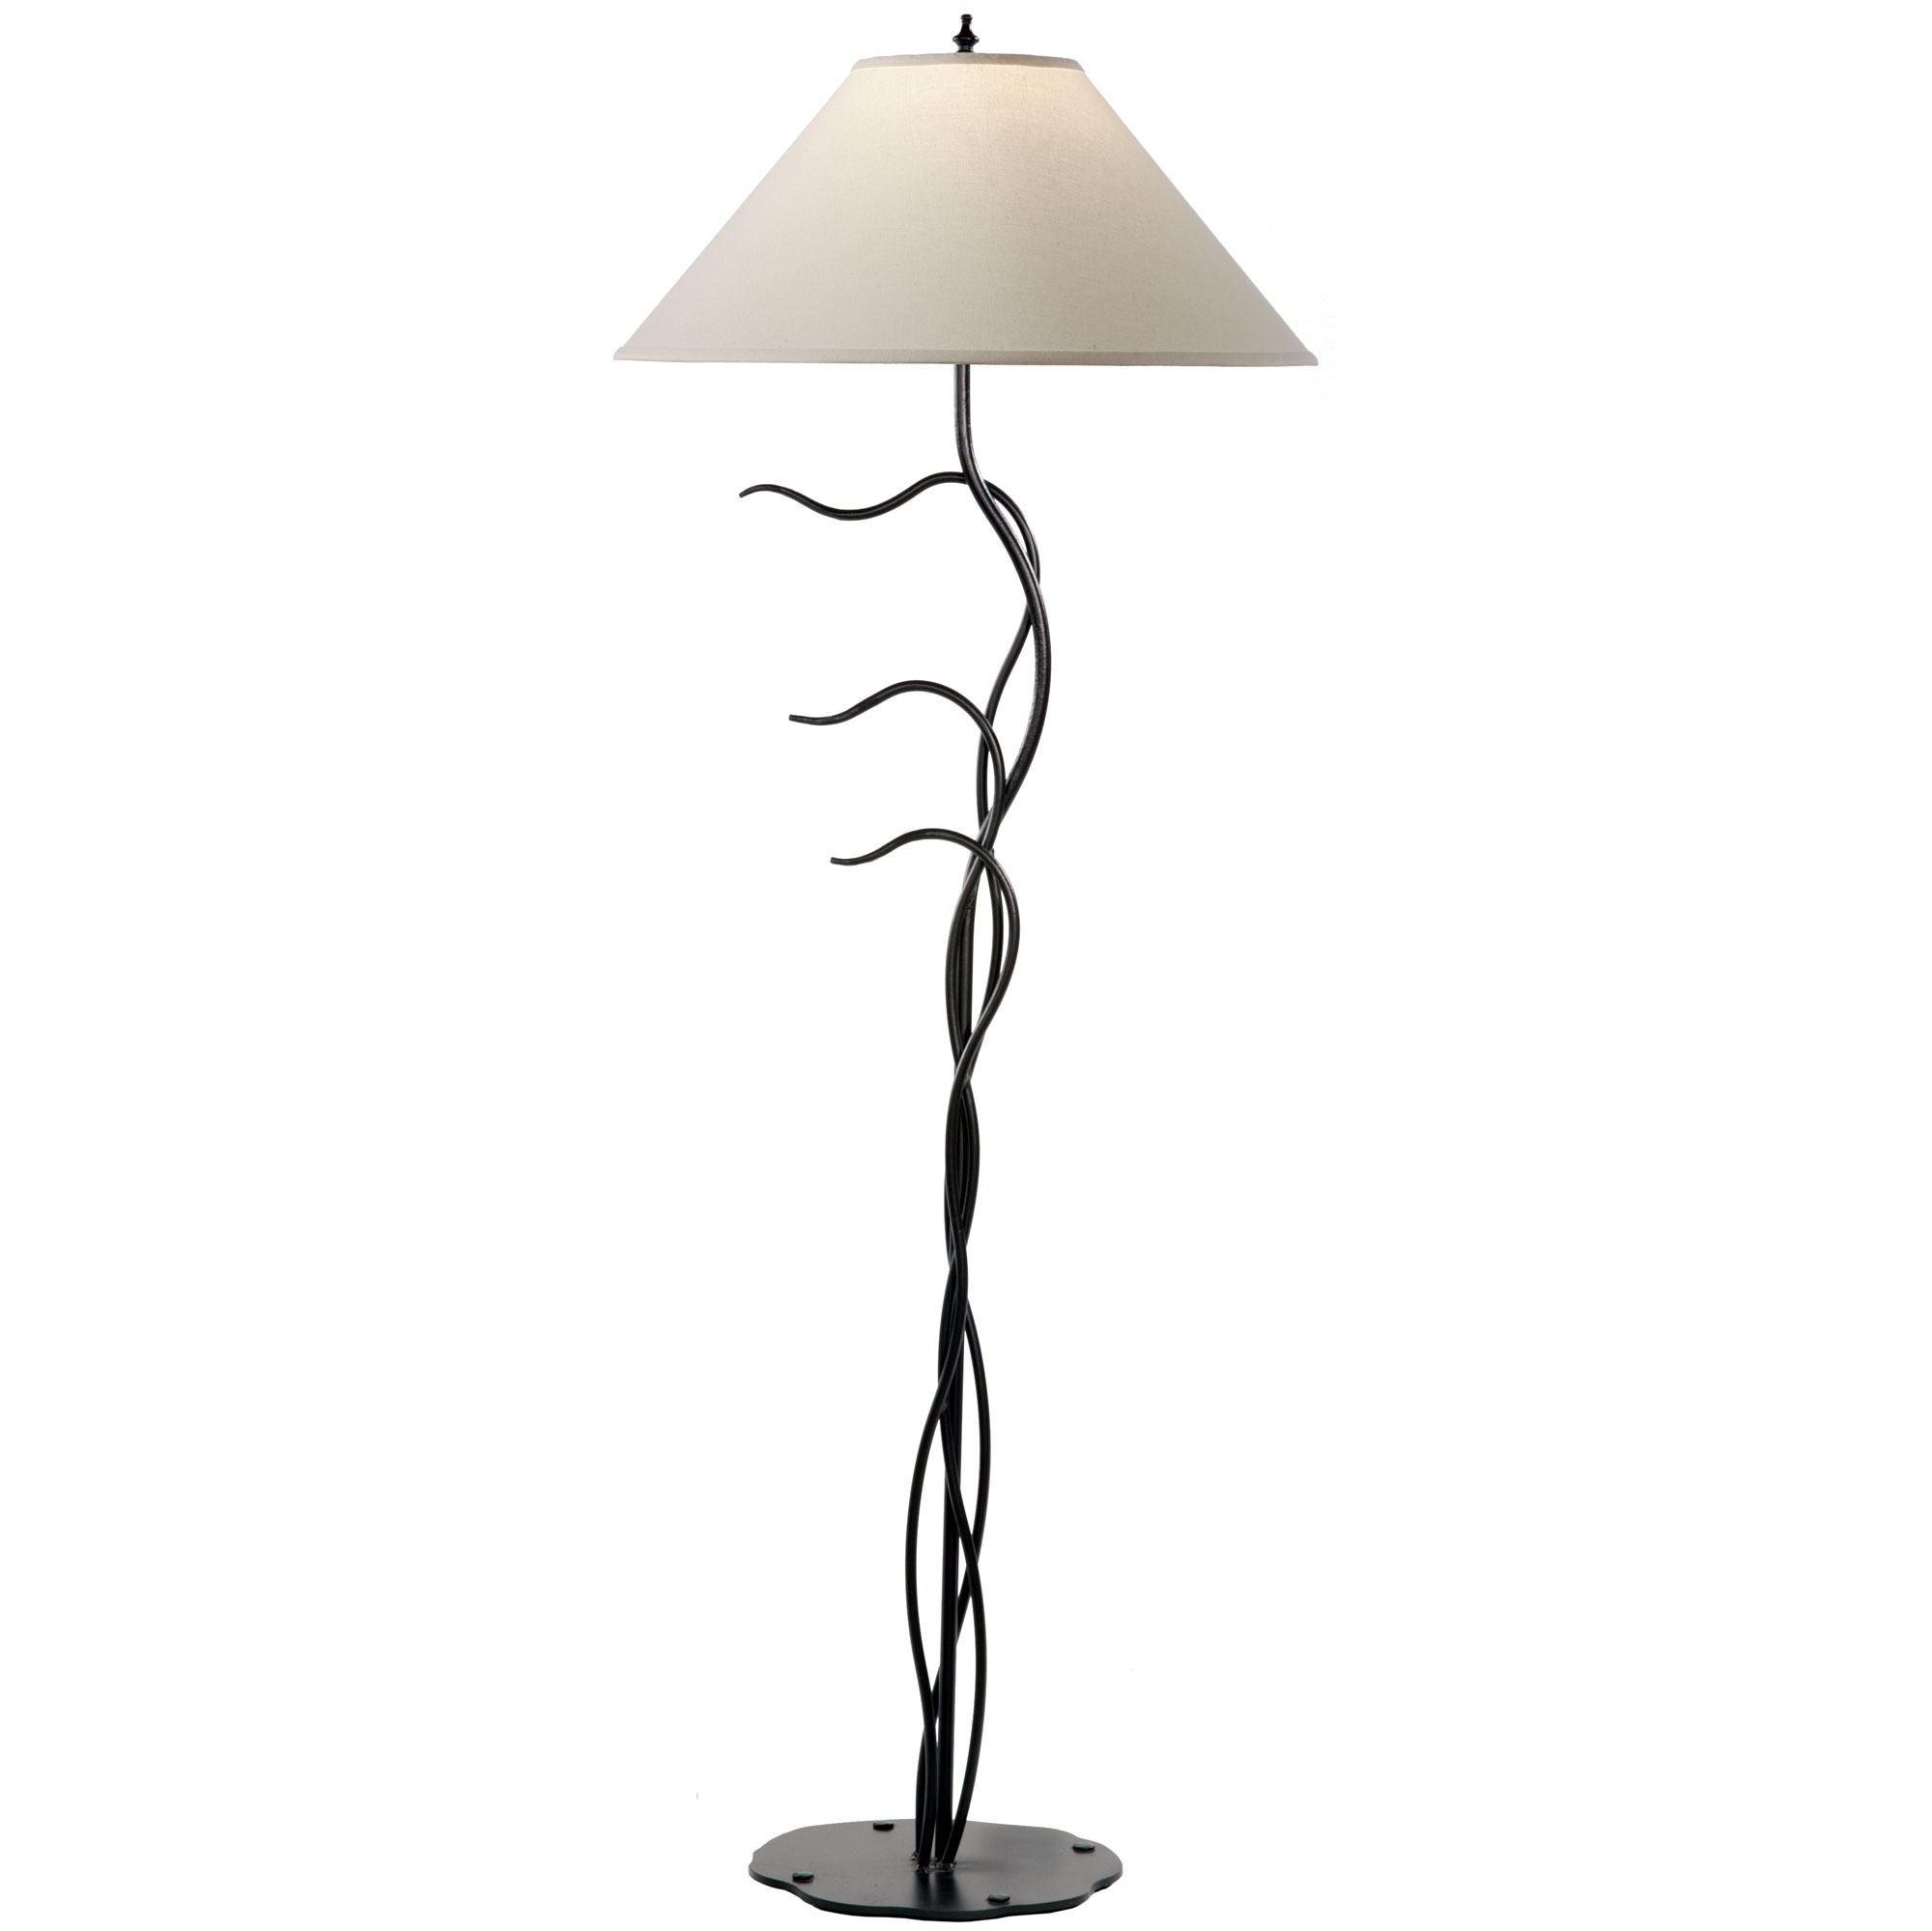 Wrought Iron Floor Lamp Breeze Floor Lamp